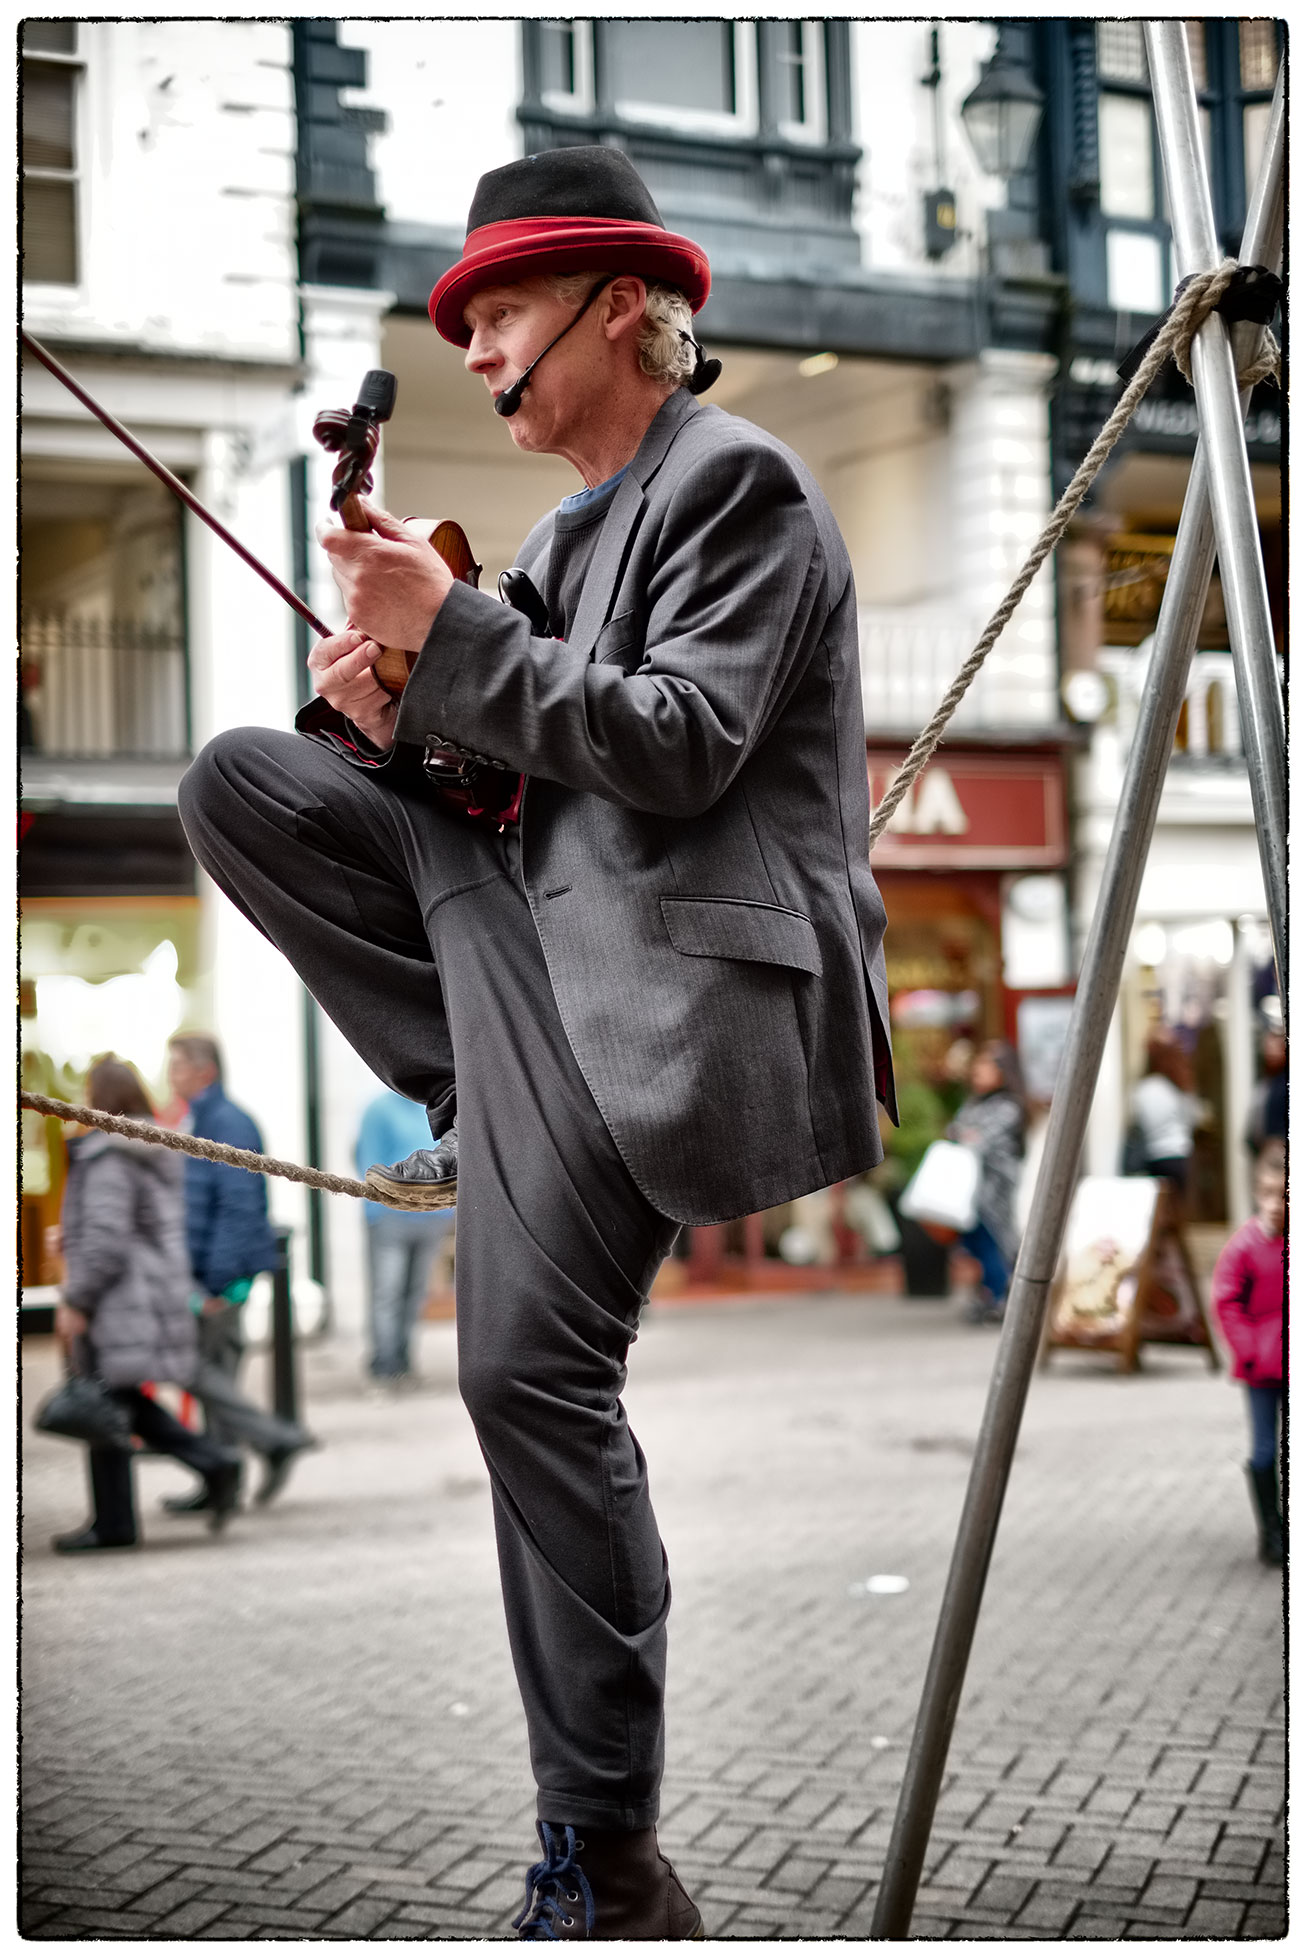 Entertaining busker ion the centre of Chester today.